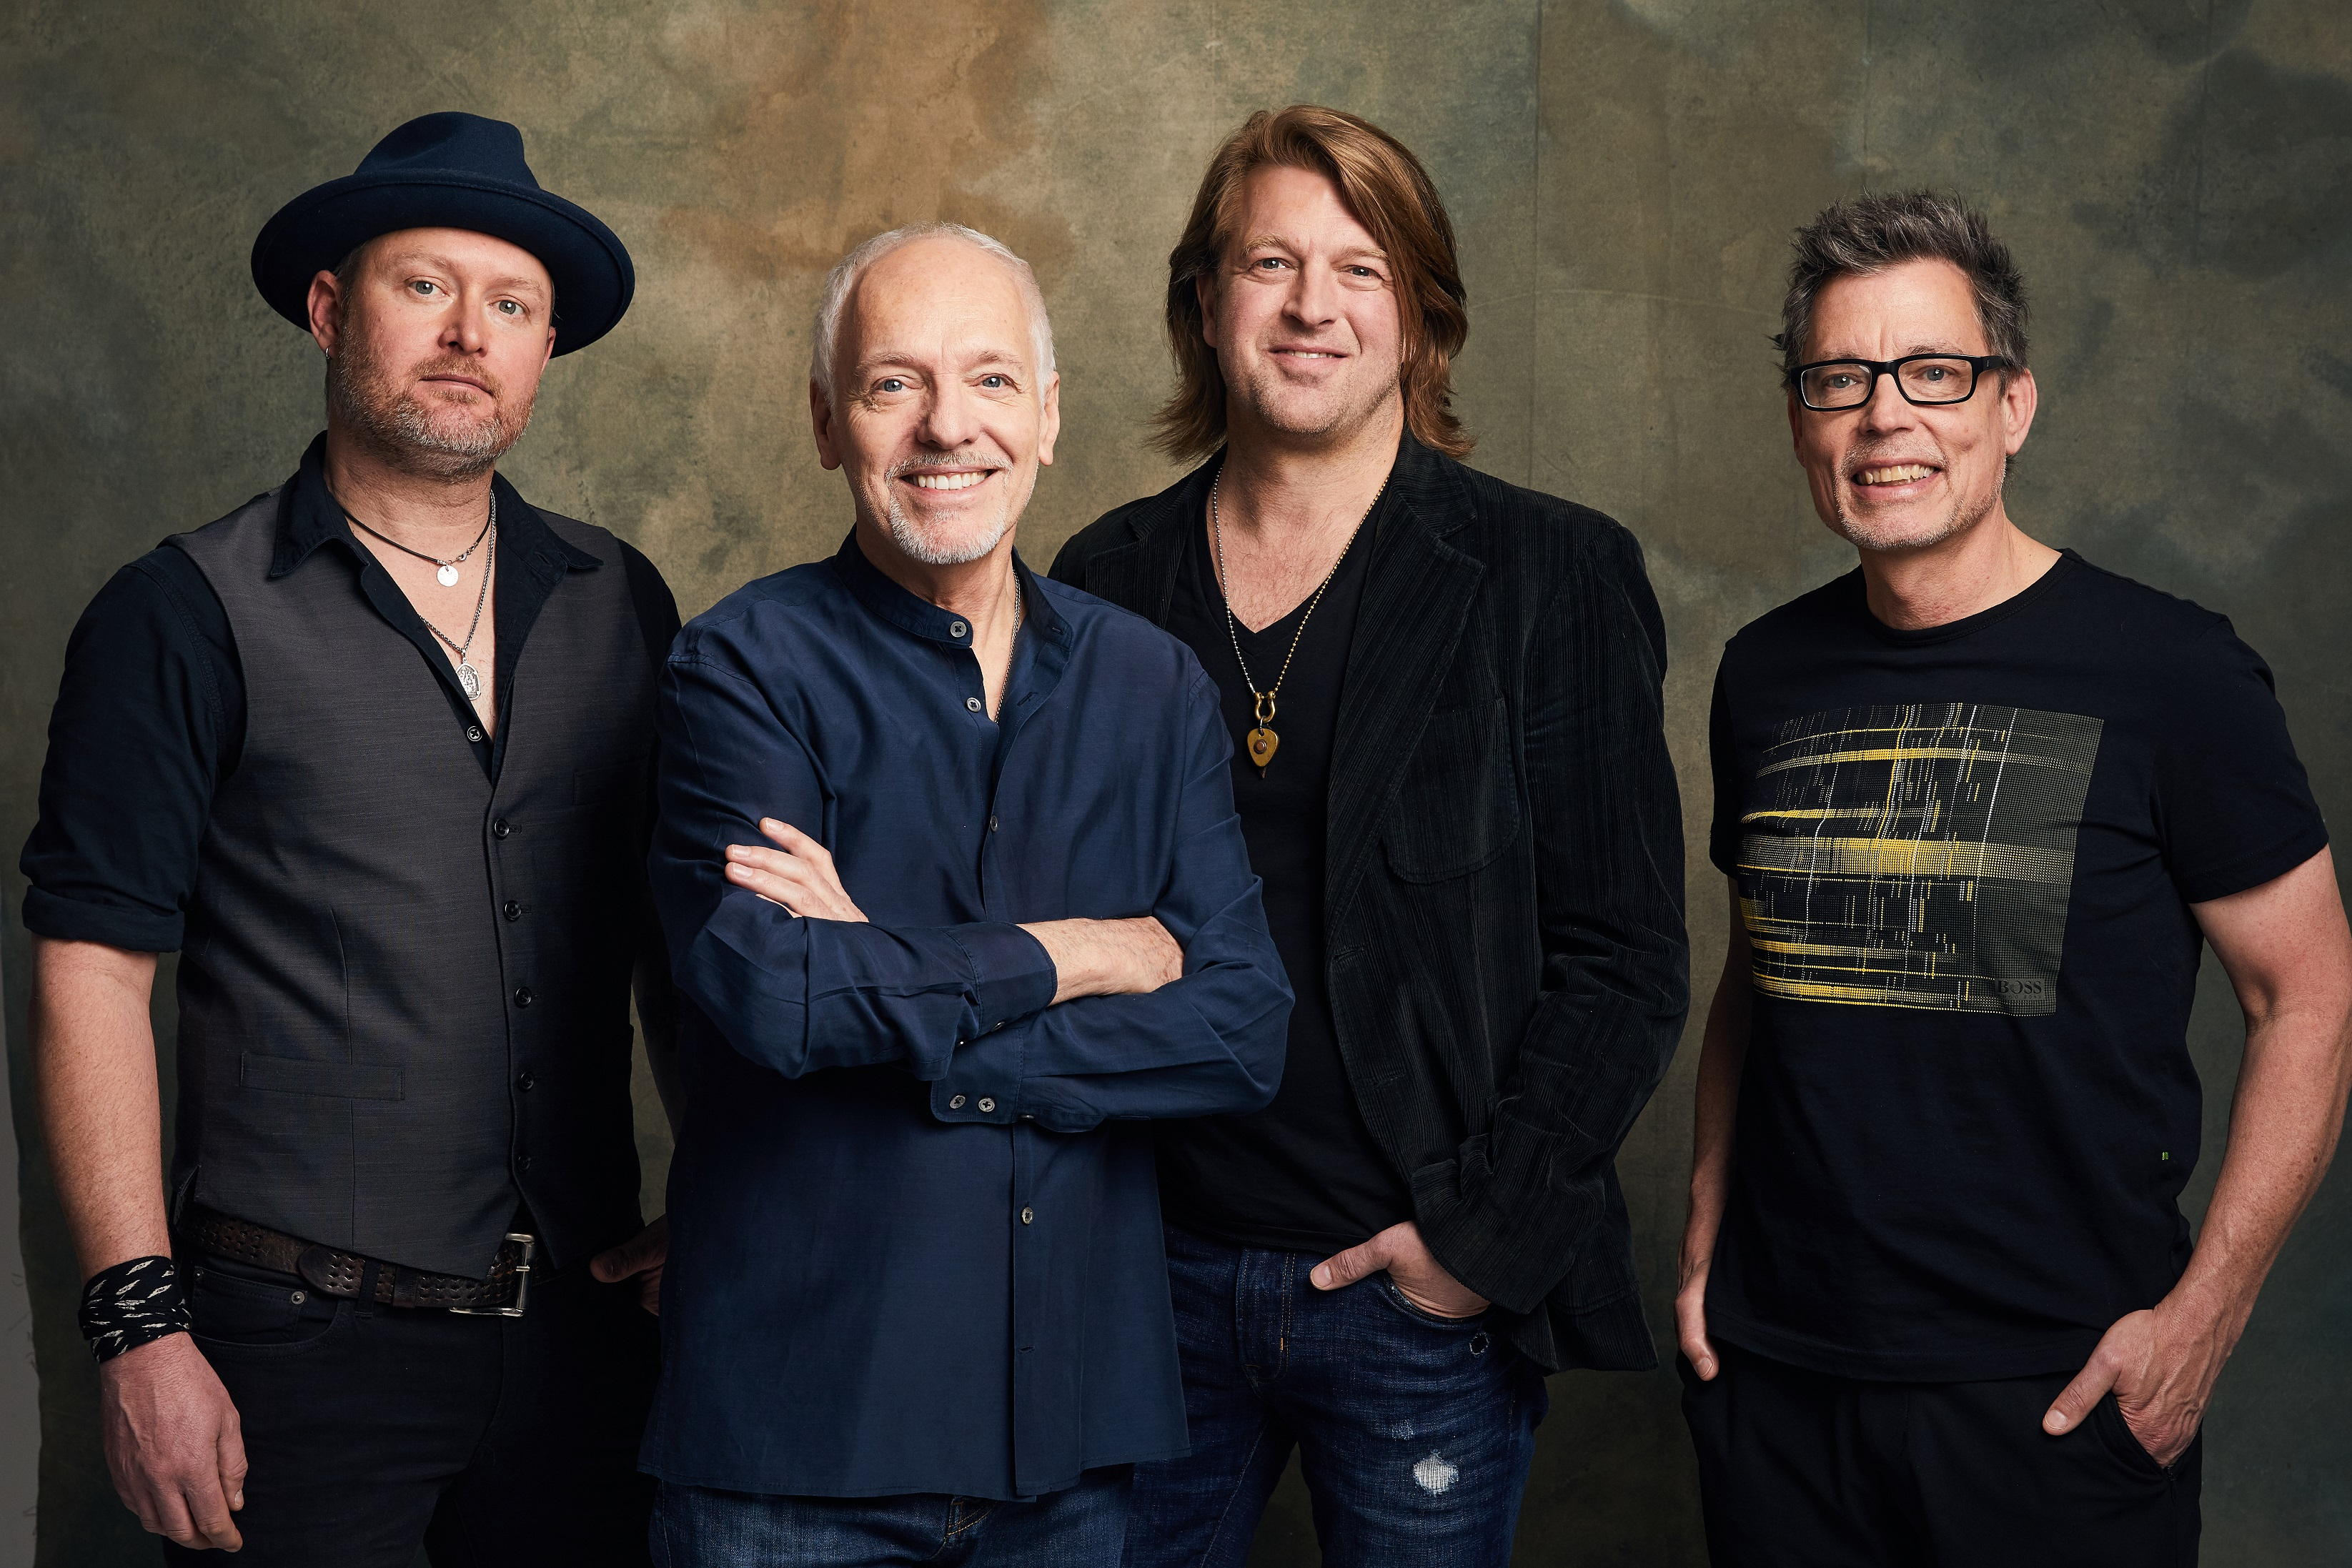 Peter Frampton Band-Forgets The Words-Band Photo-Credit Austin Lord.jpg